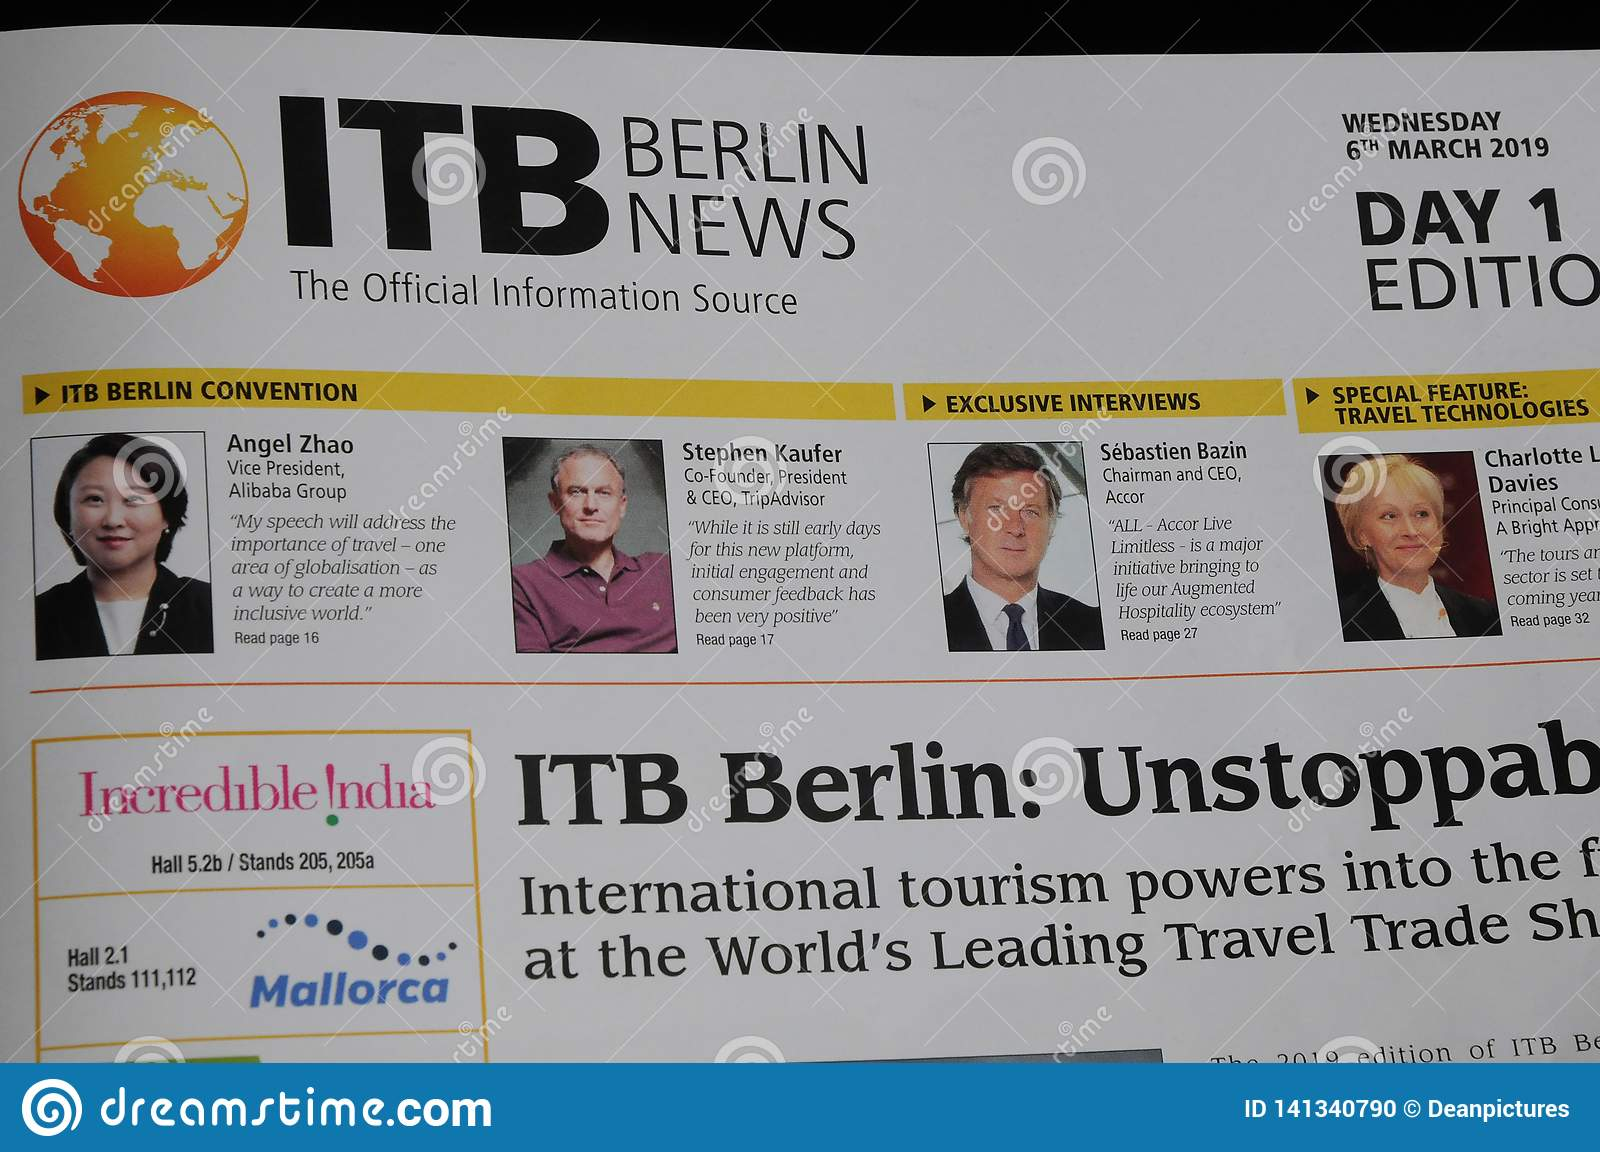 ITB BERLIN FOM MAERCH WORD TRADE TRAVEL SHOW Editorial Image - Image